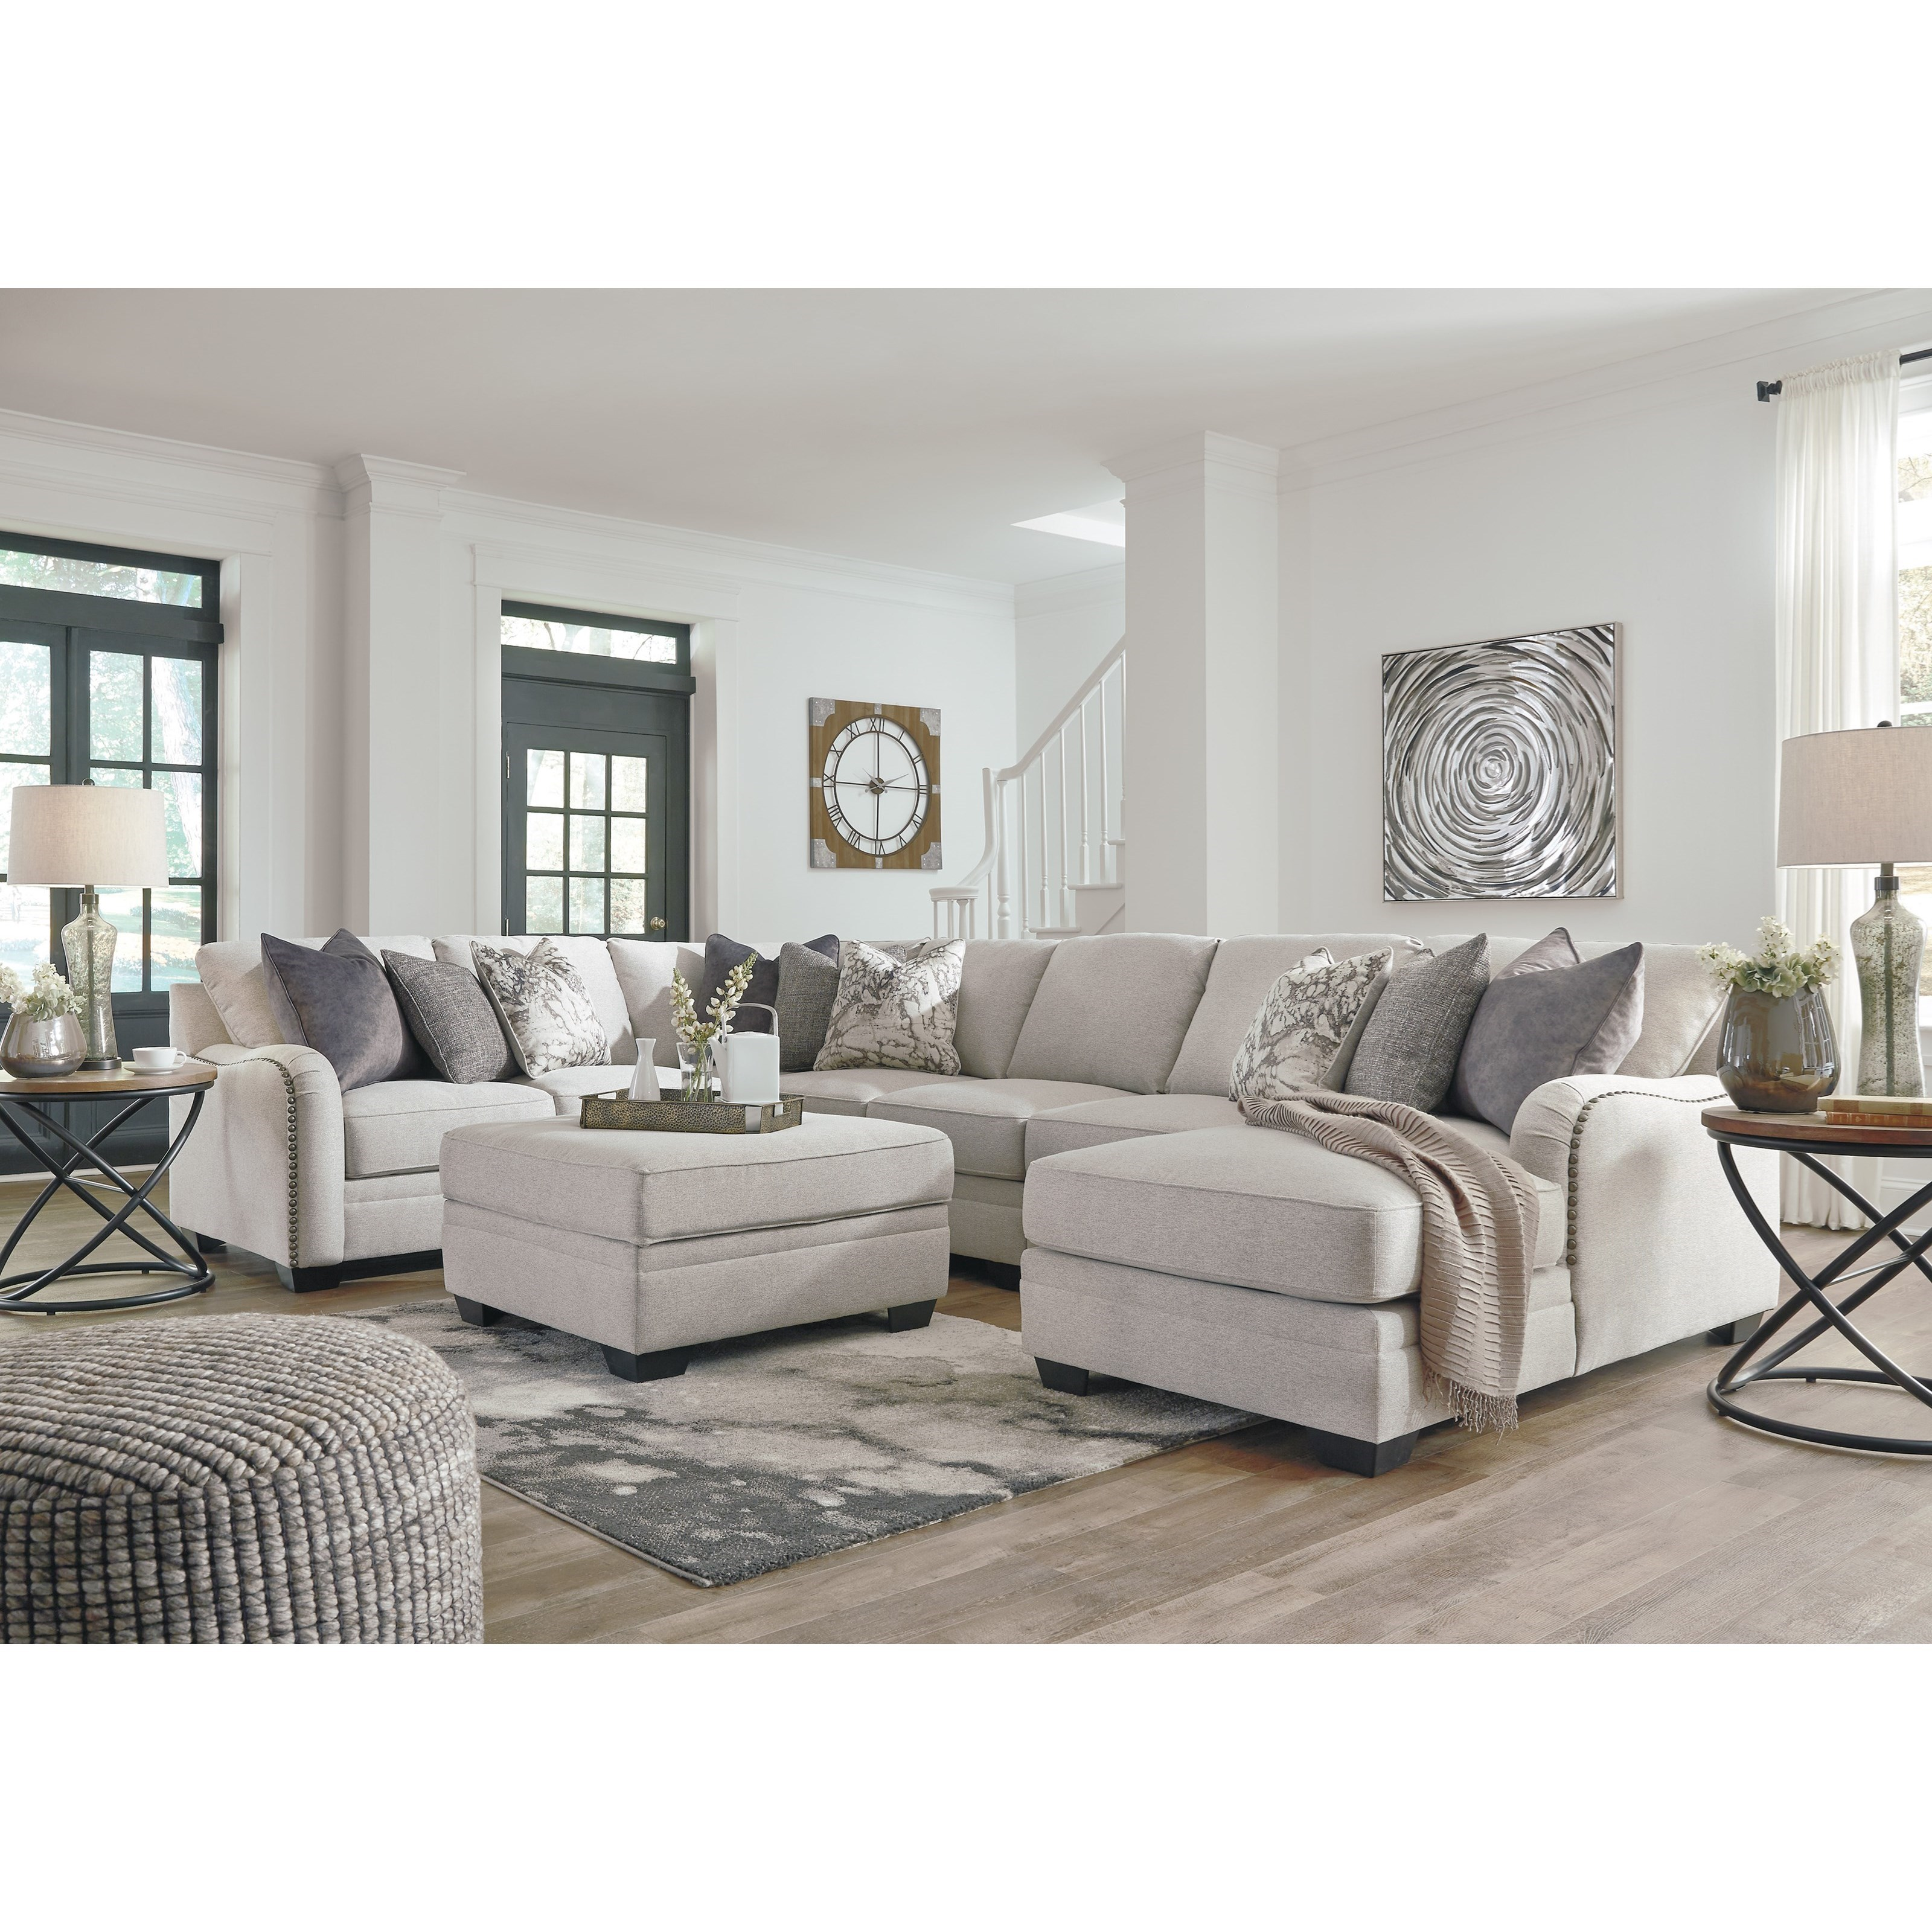 Dellara Stationary Living Room Group by Benchcraft at Value City Furniture